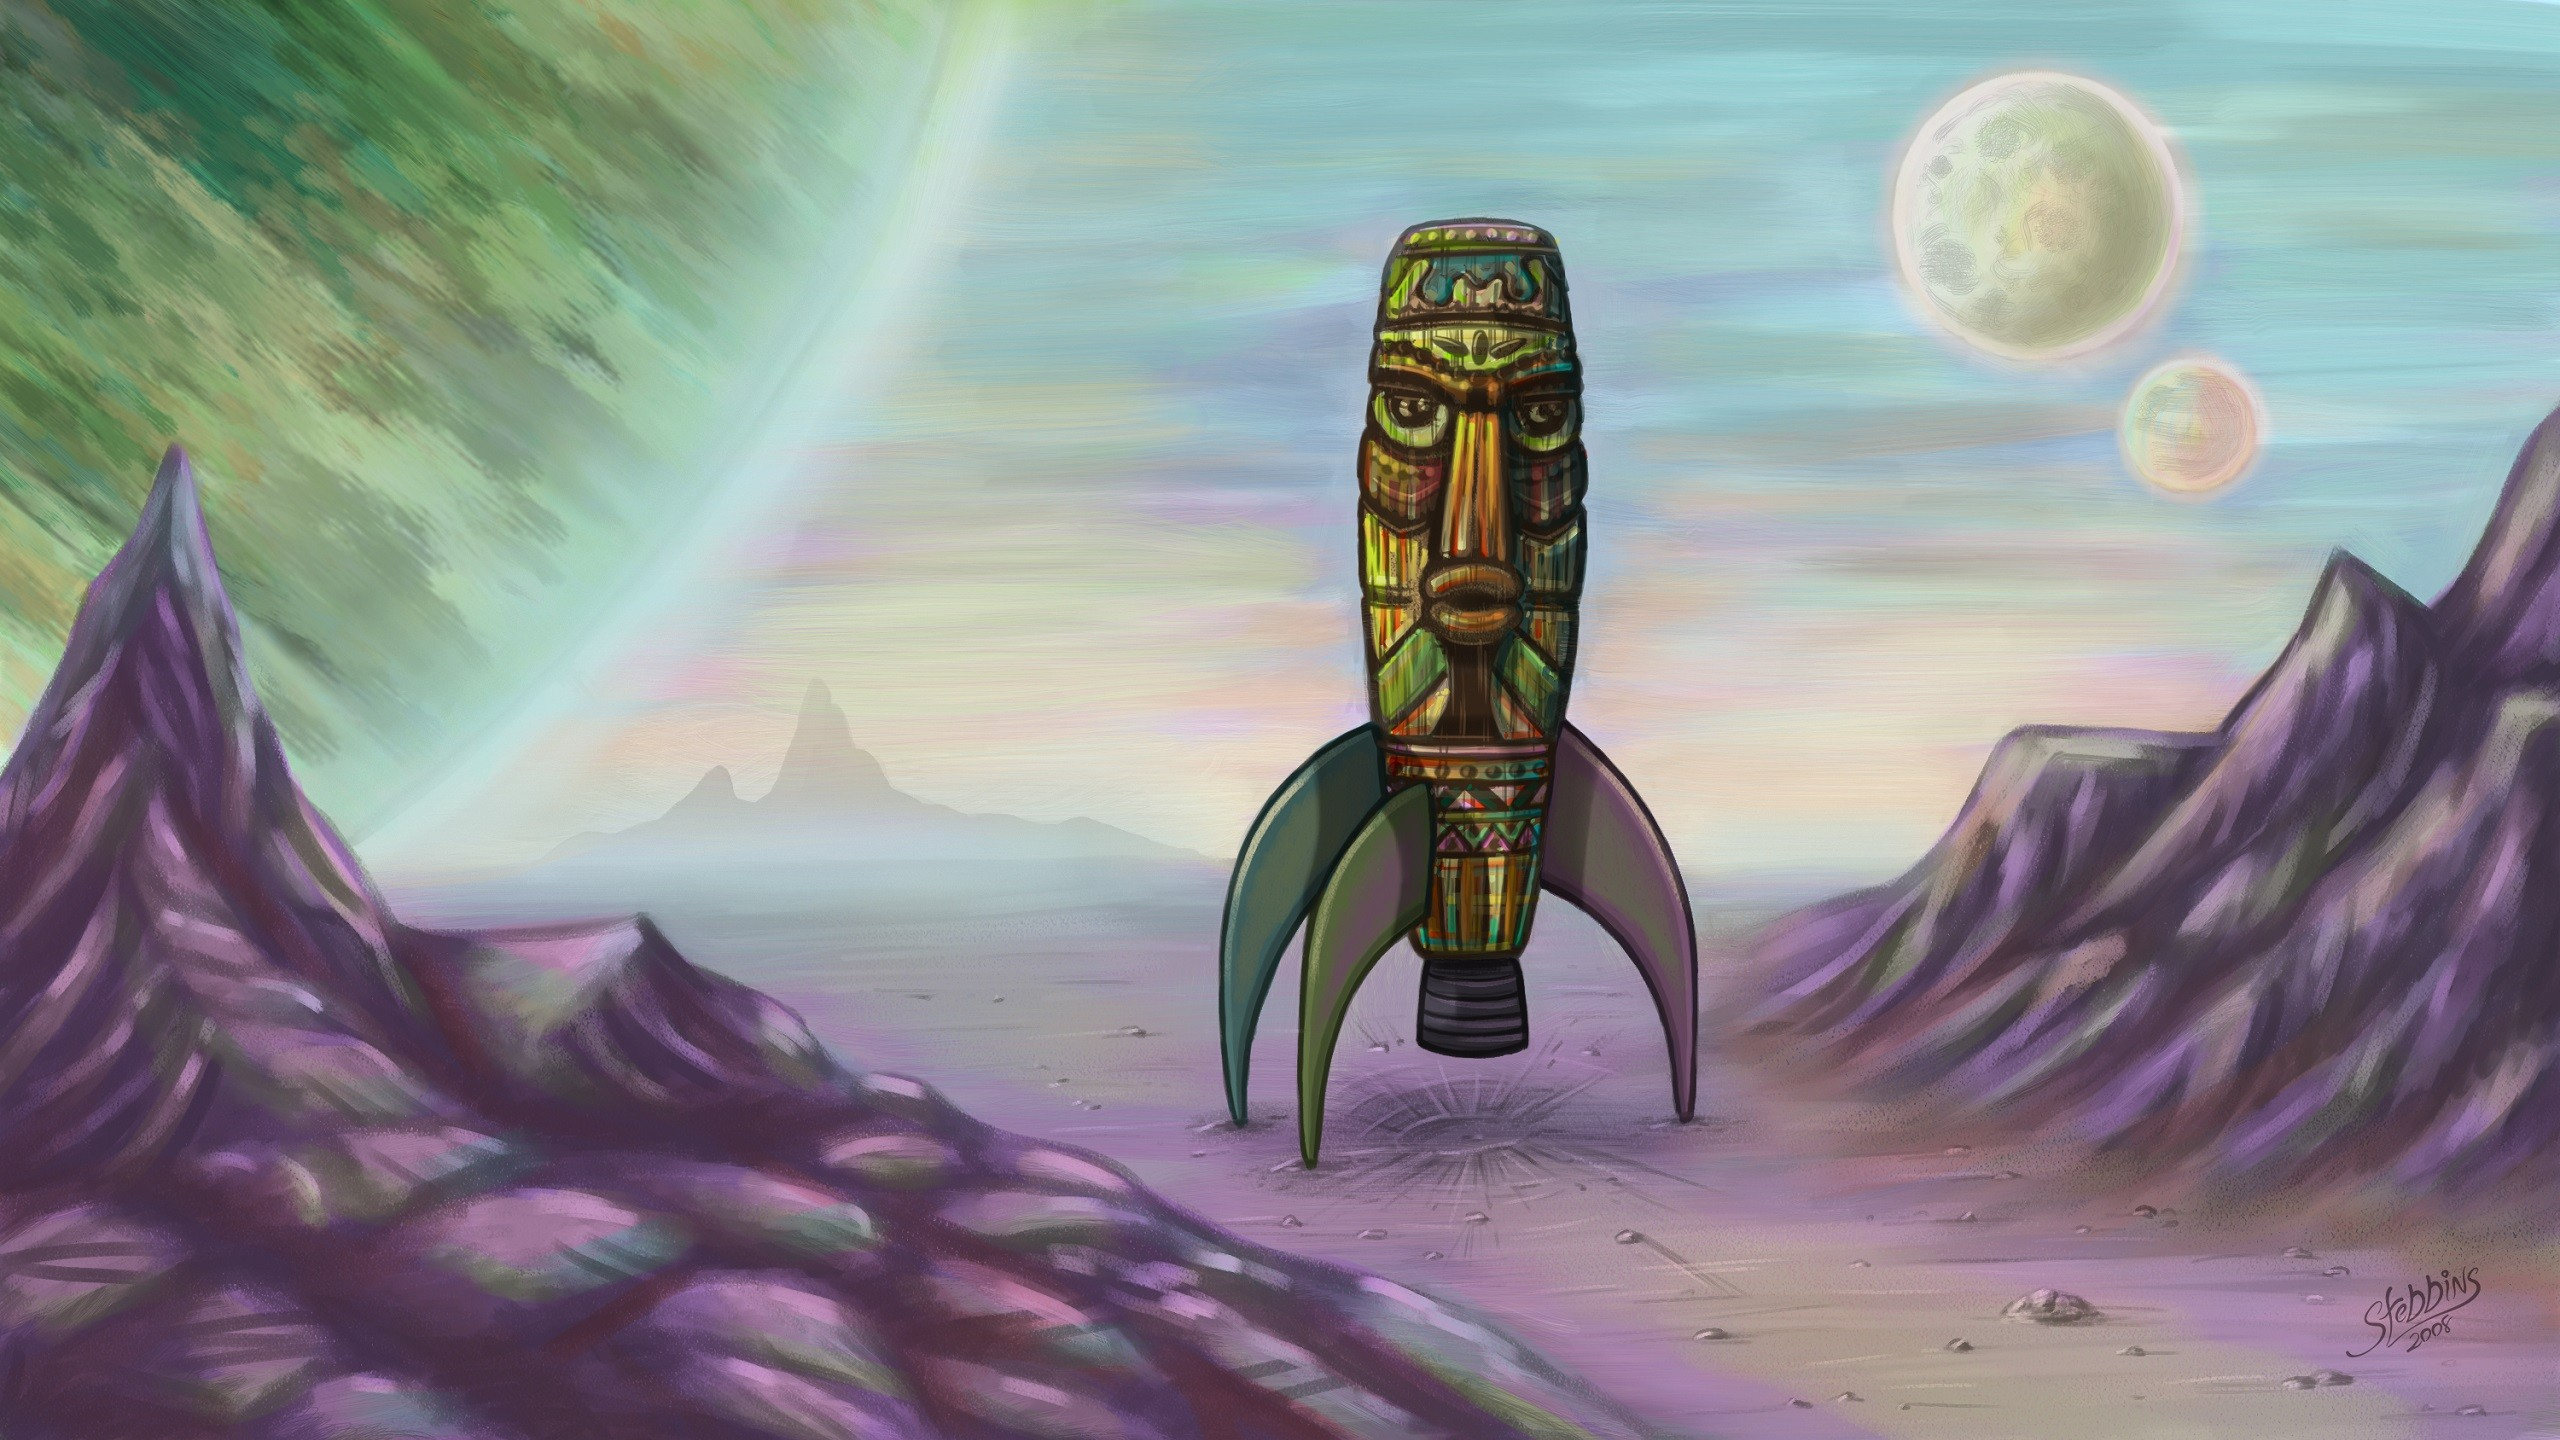 General 2560x1440 space vintage totem Tiki rocket artwork fantasy art